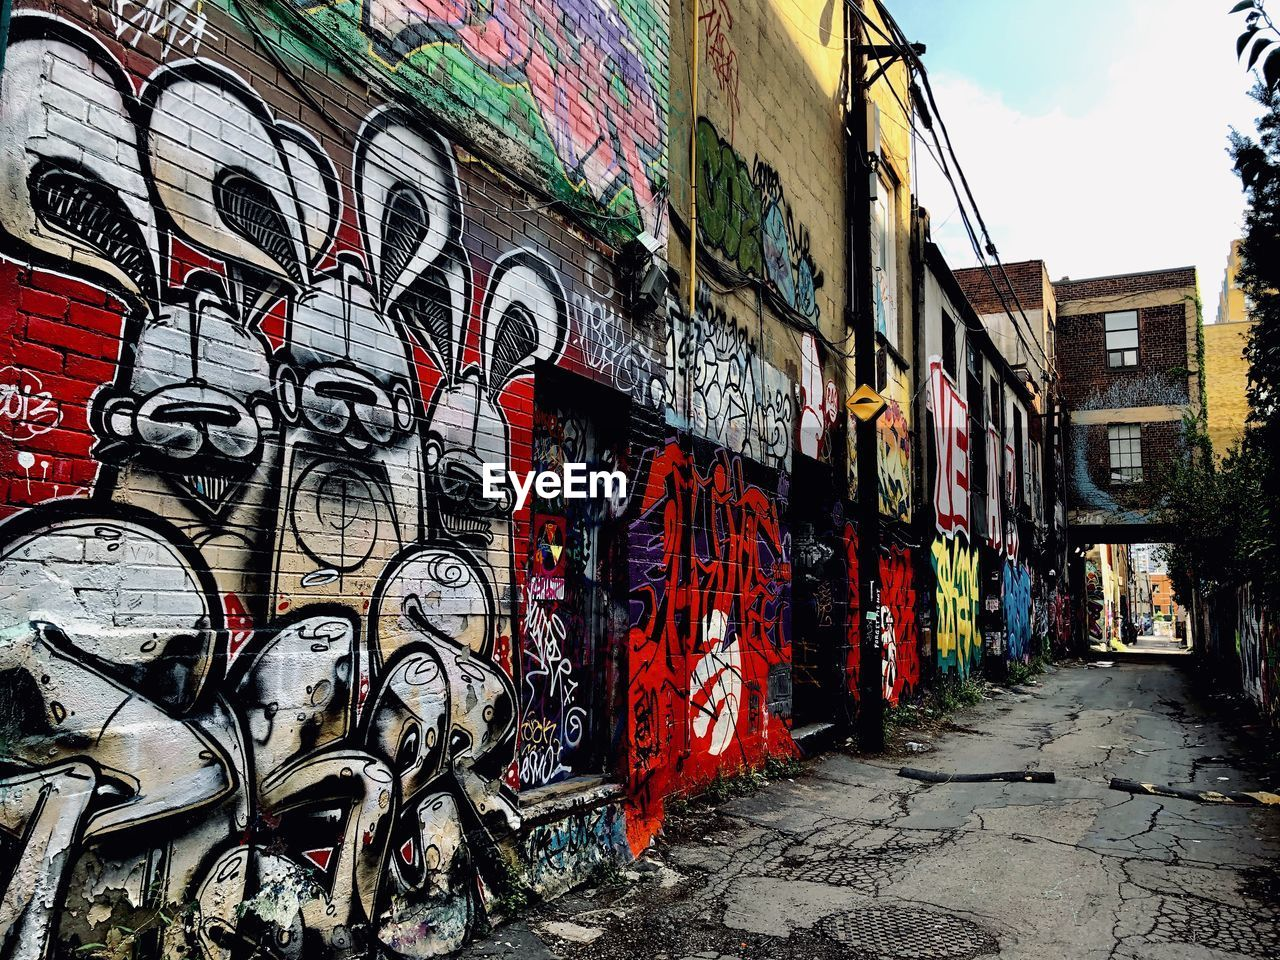 architecture, graffiti, built structure, building exterior, art and craft, creativity, building, city, wall - building feature, multi colored, day, street art, no people, street, outdoors, craft, communication, messy, text, mural, alley